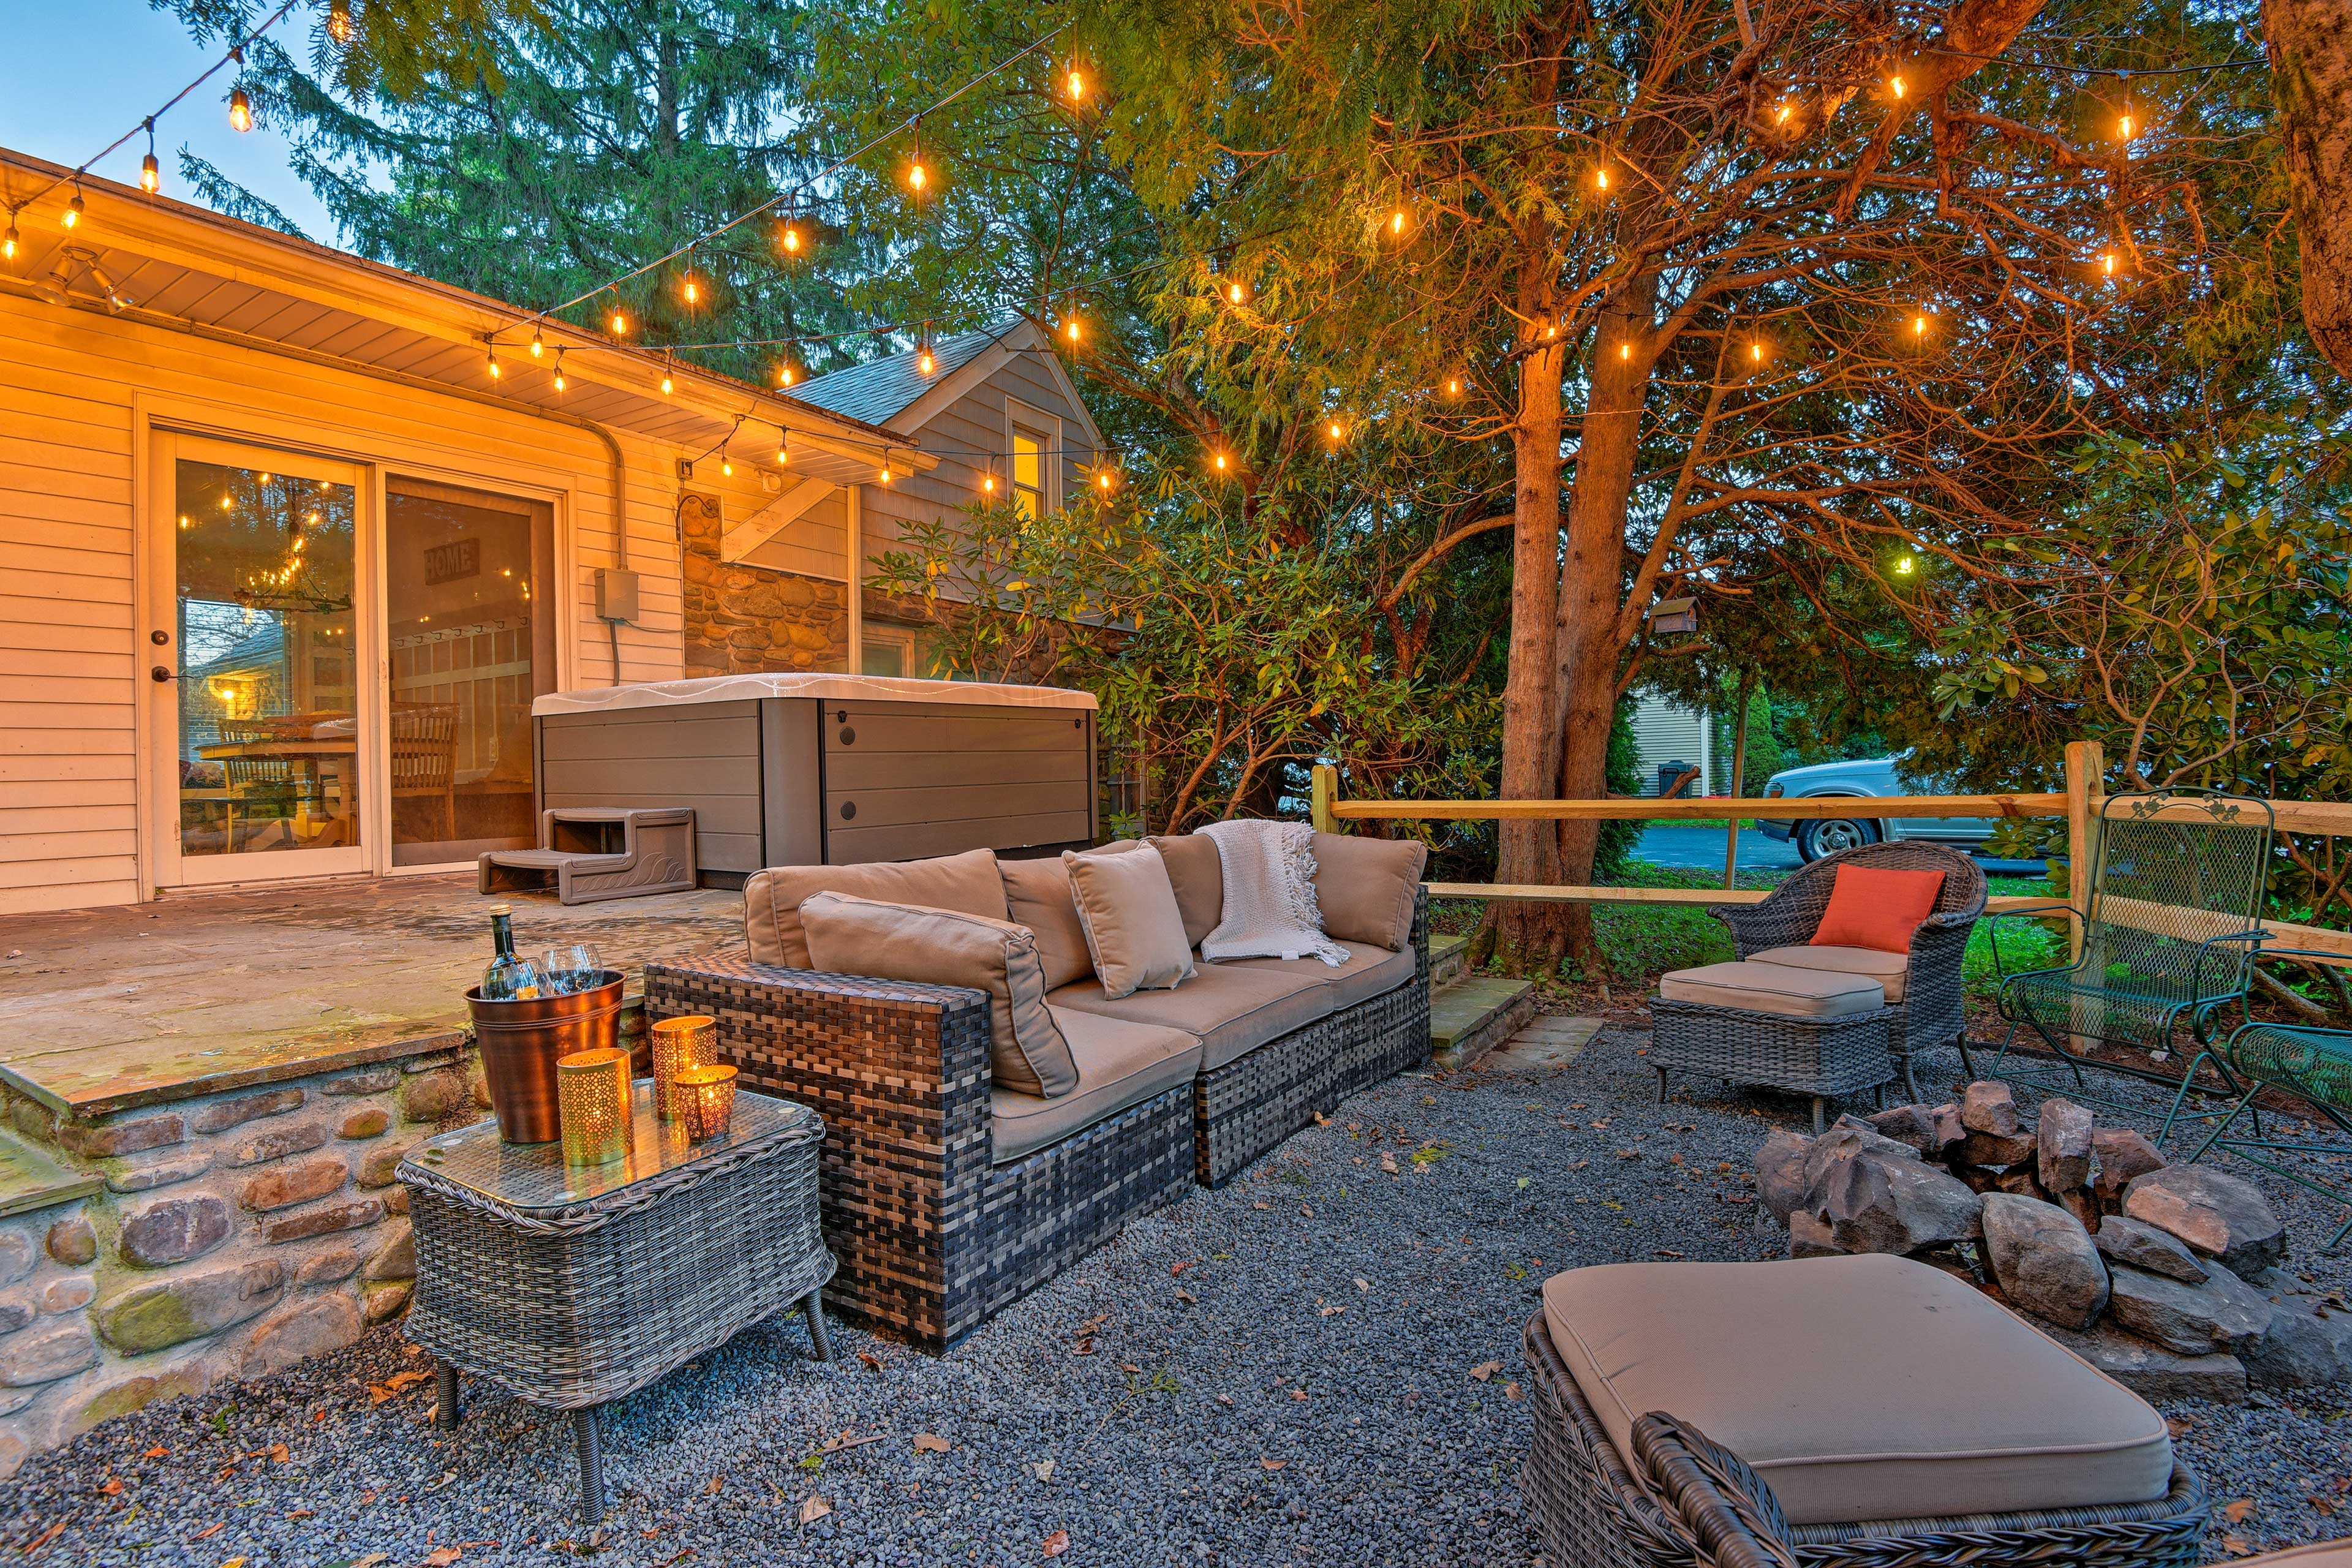 The dreamy backyard is the ideal spot to relax.